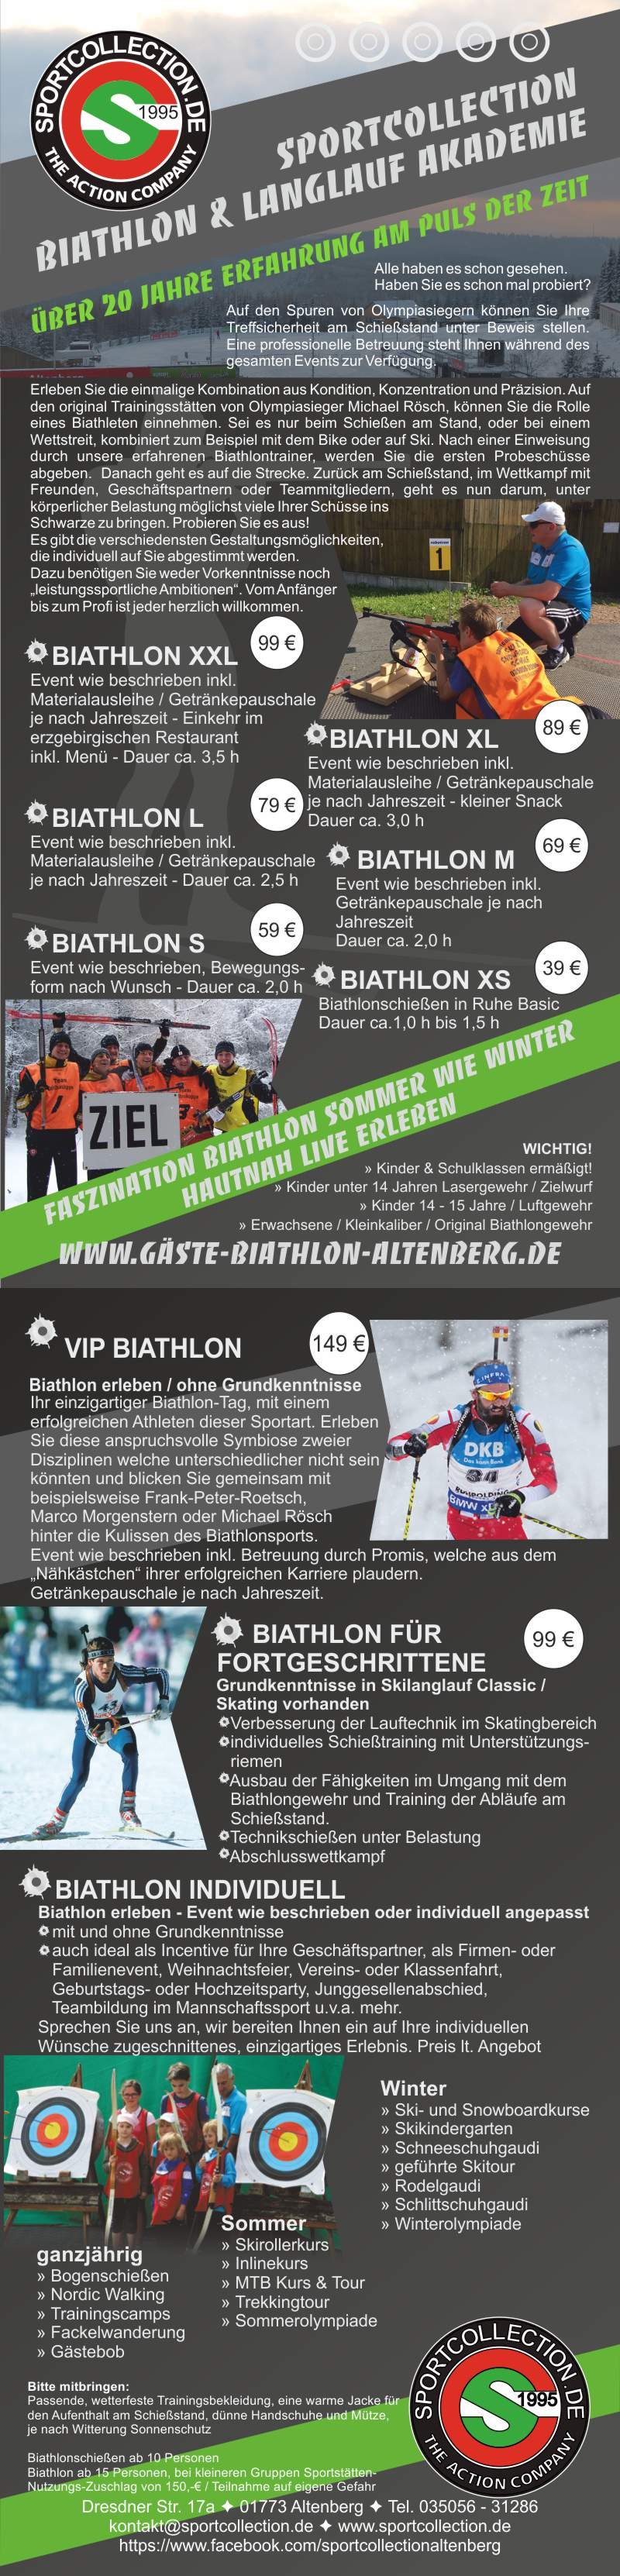 Biathlon mit sportcollection